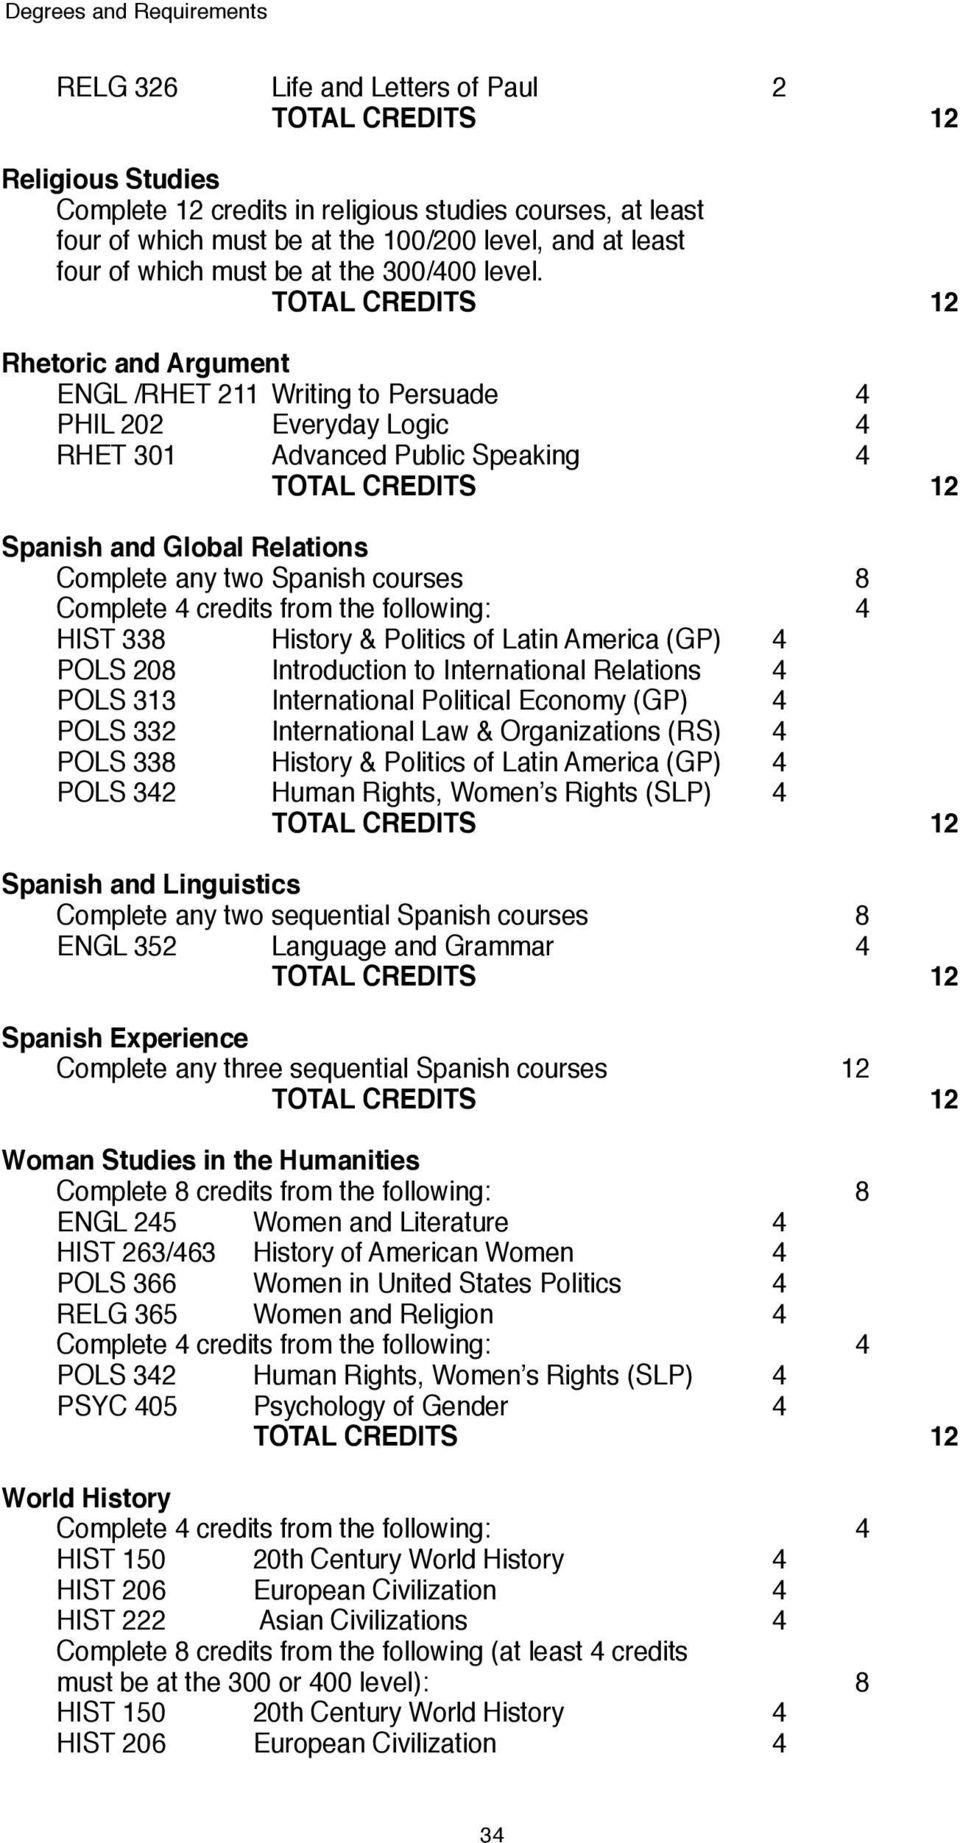 Rhetoric and Argument ENGL /RHET 211 Writing to Persuade 4 PHIL 202 Everyday Logic 4 RHET 301 Advanced Public Speaking 4 Spanish and Global Relations Complete any two Spanish courses 8 HIST 338